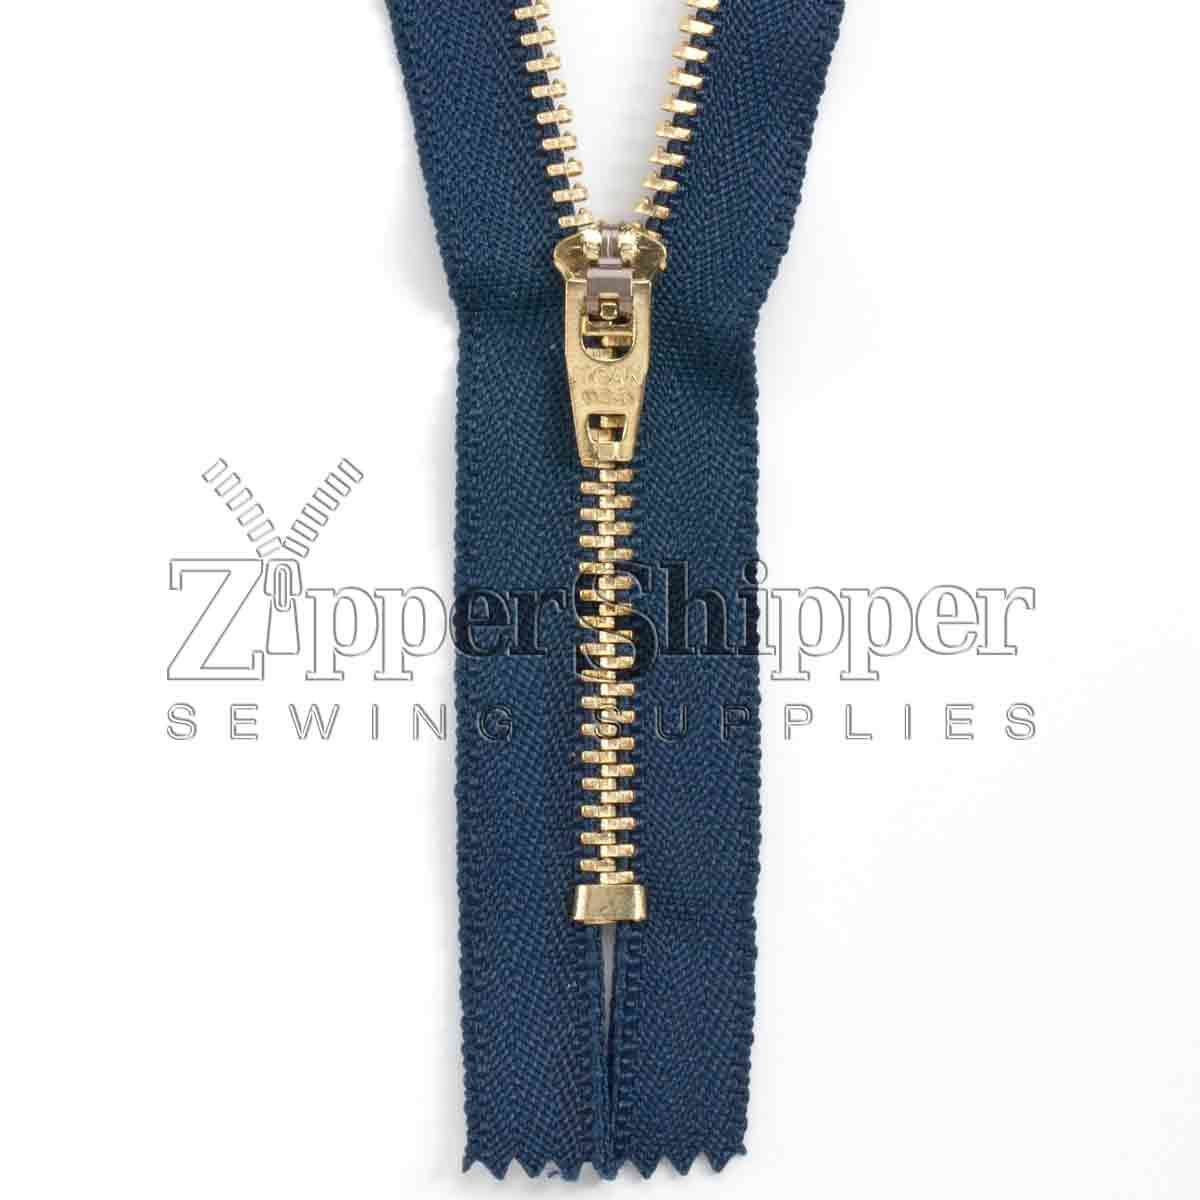 how to change a zipper color